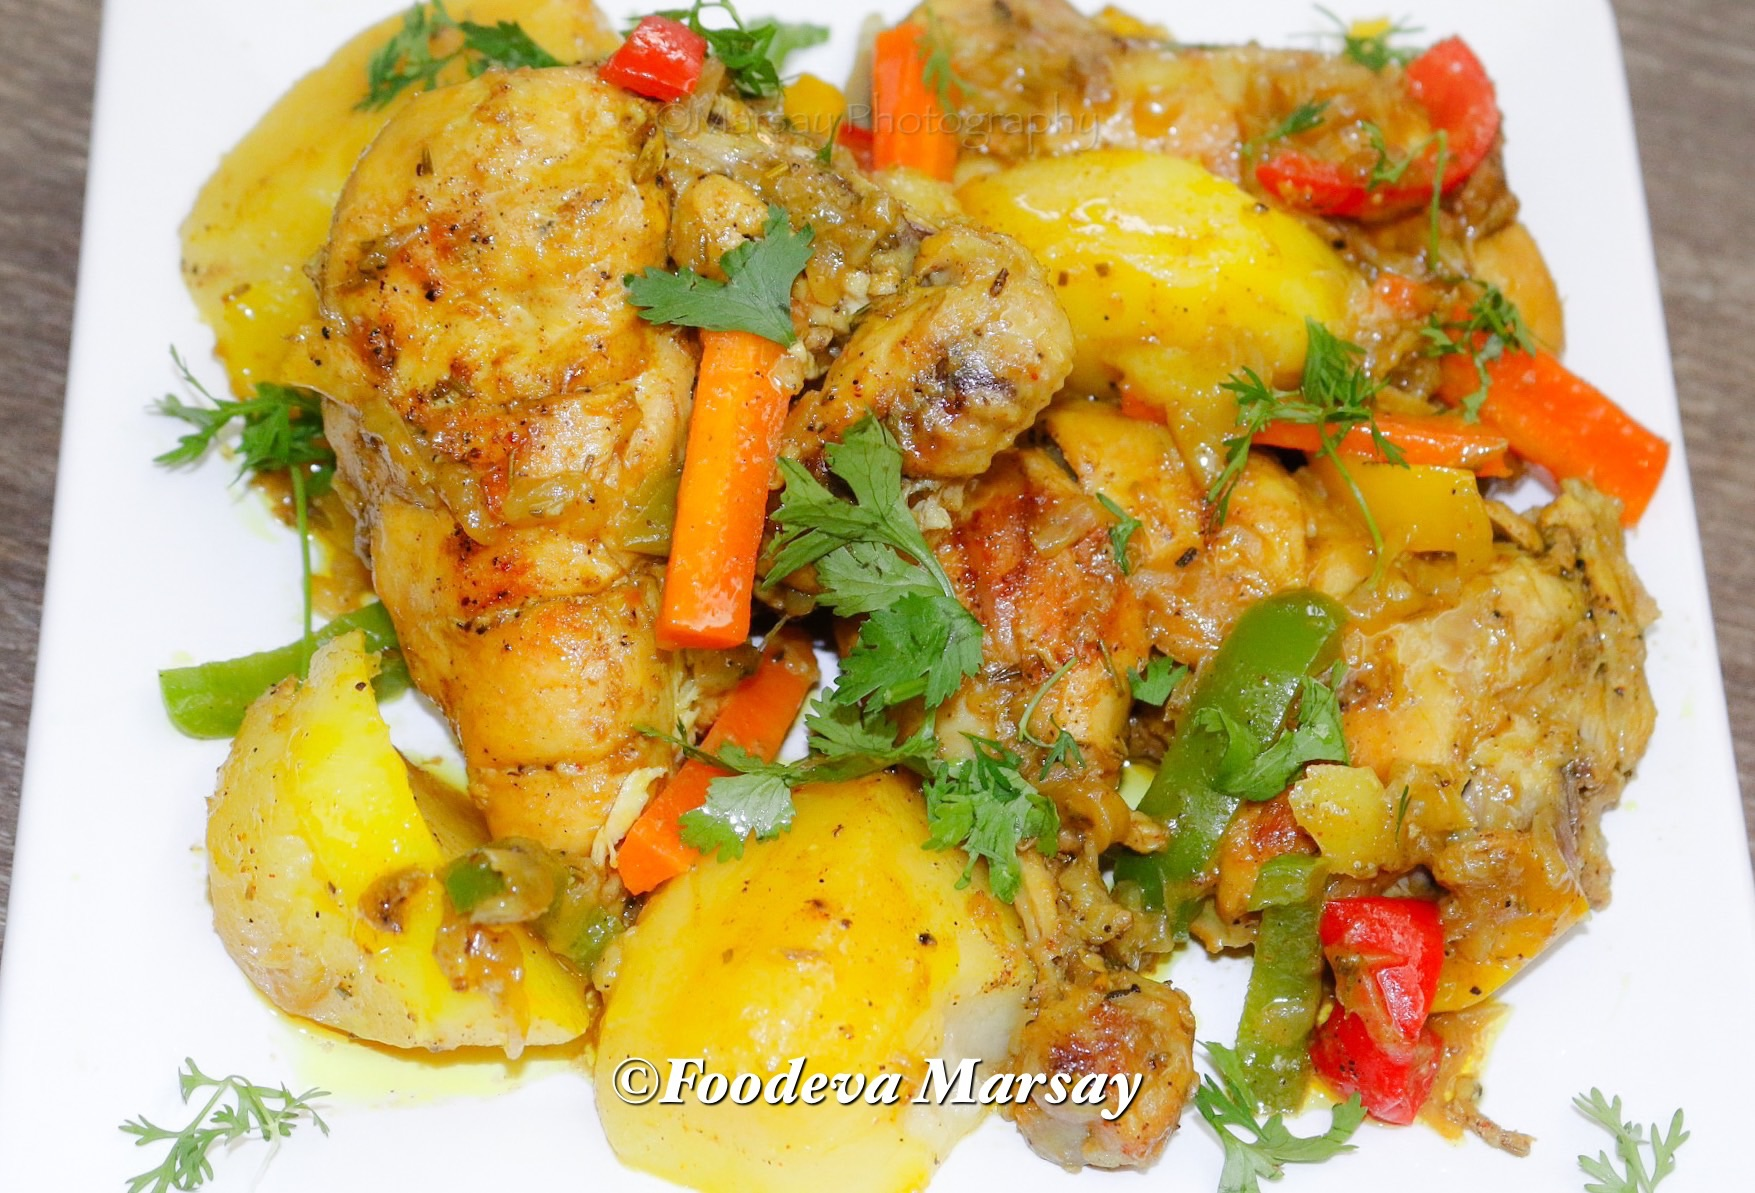 Rosemary and Lemon Chicken